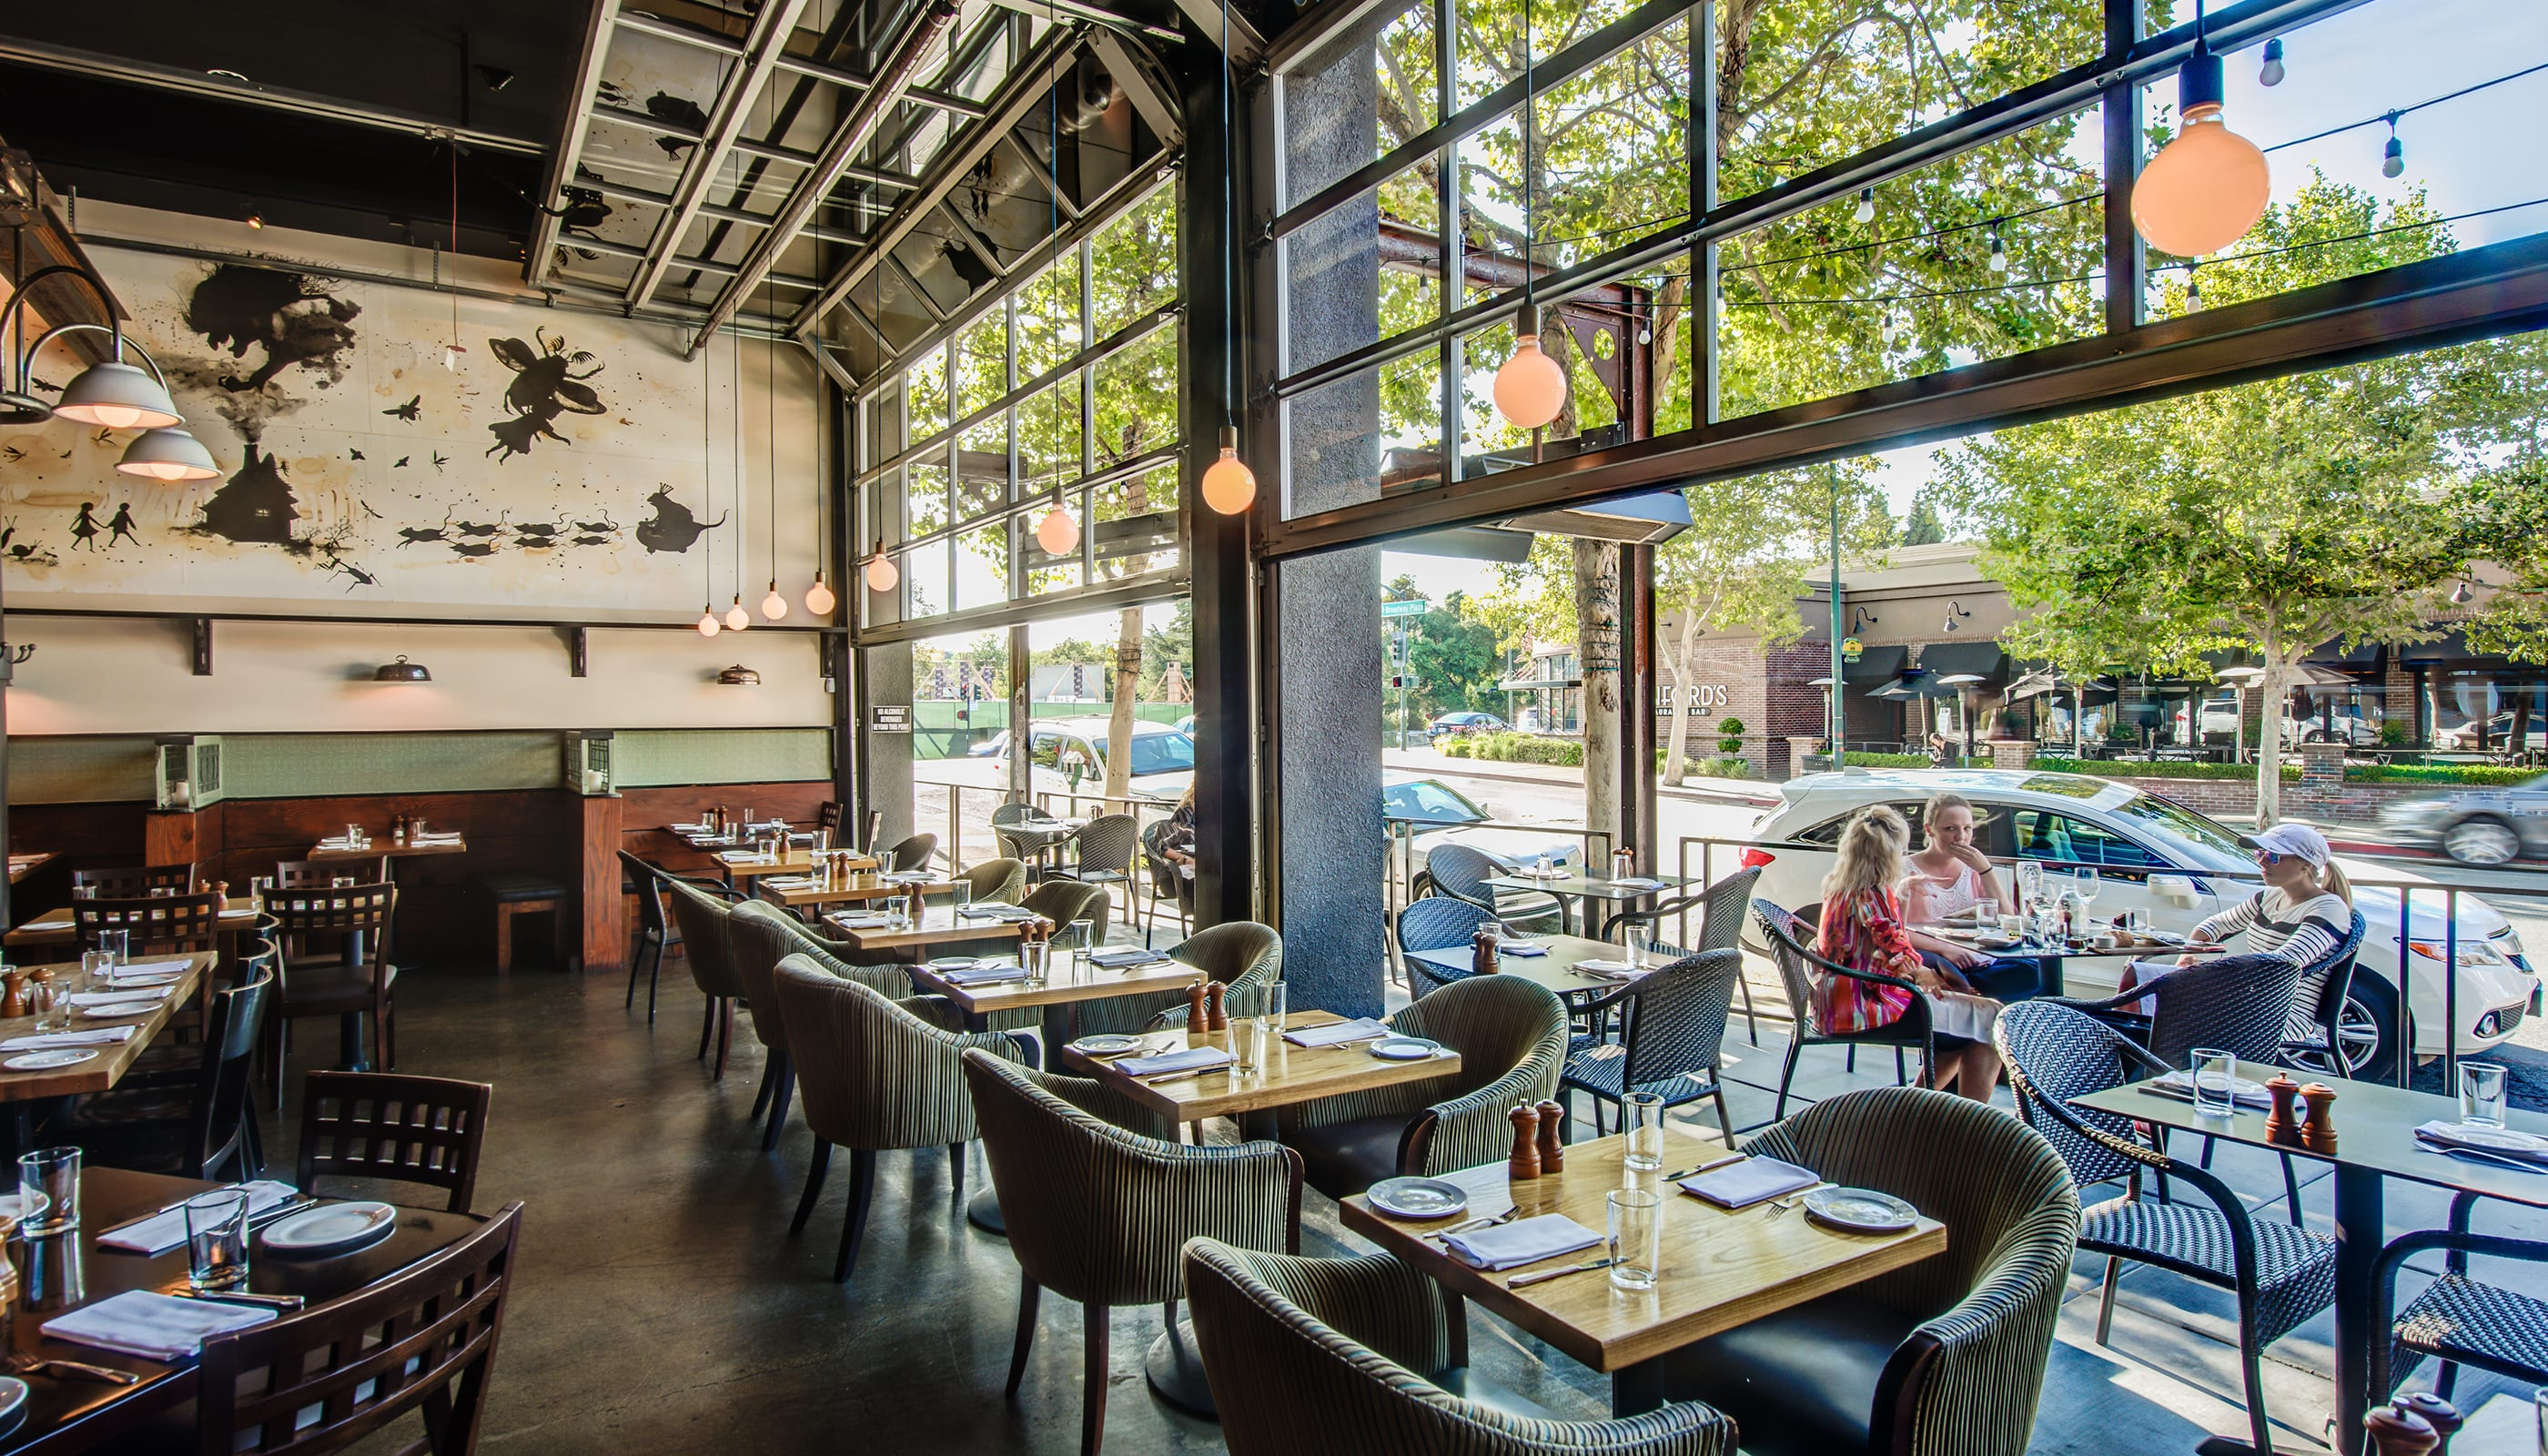 Corners Tavern - Commercial Architecture